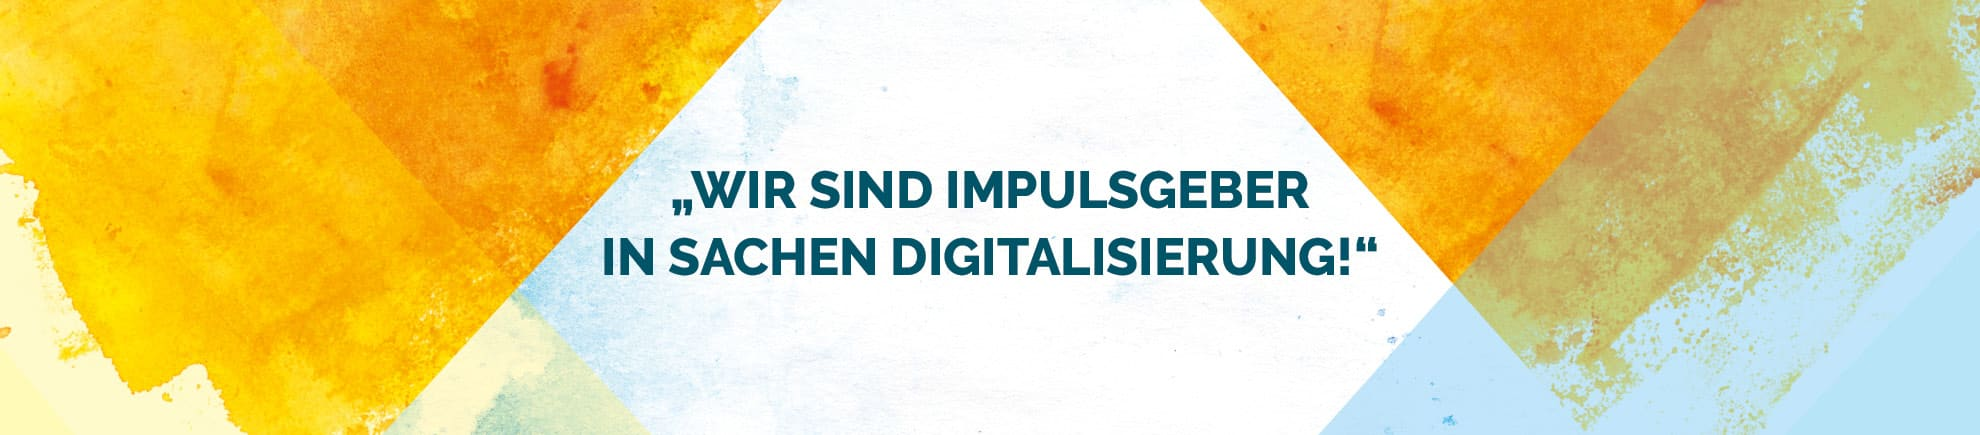 Digitalislierung MICE Branche